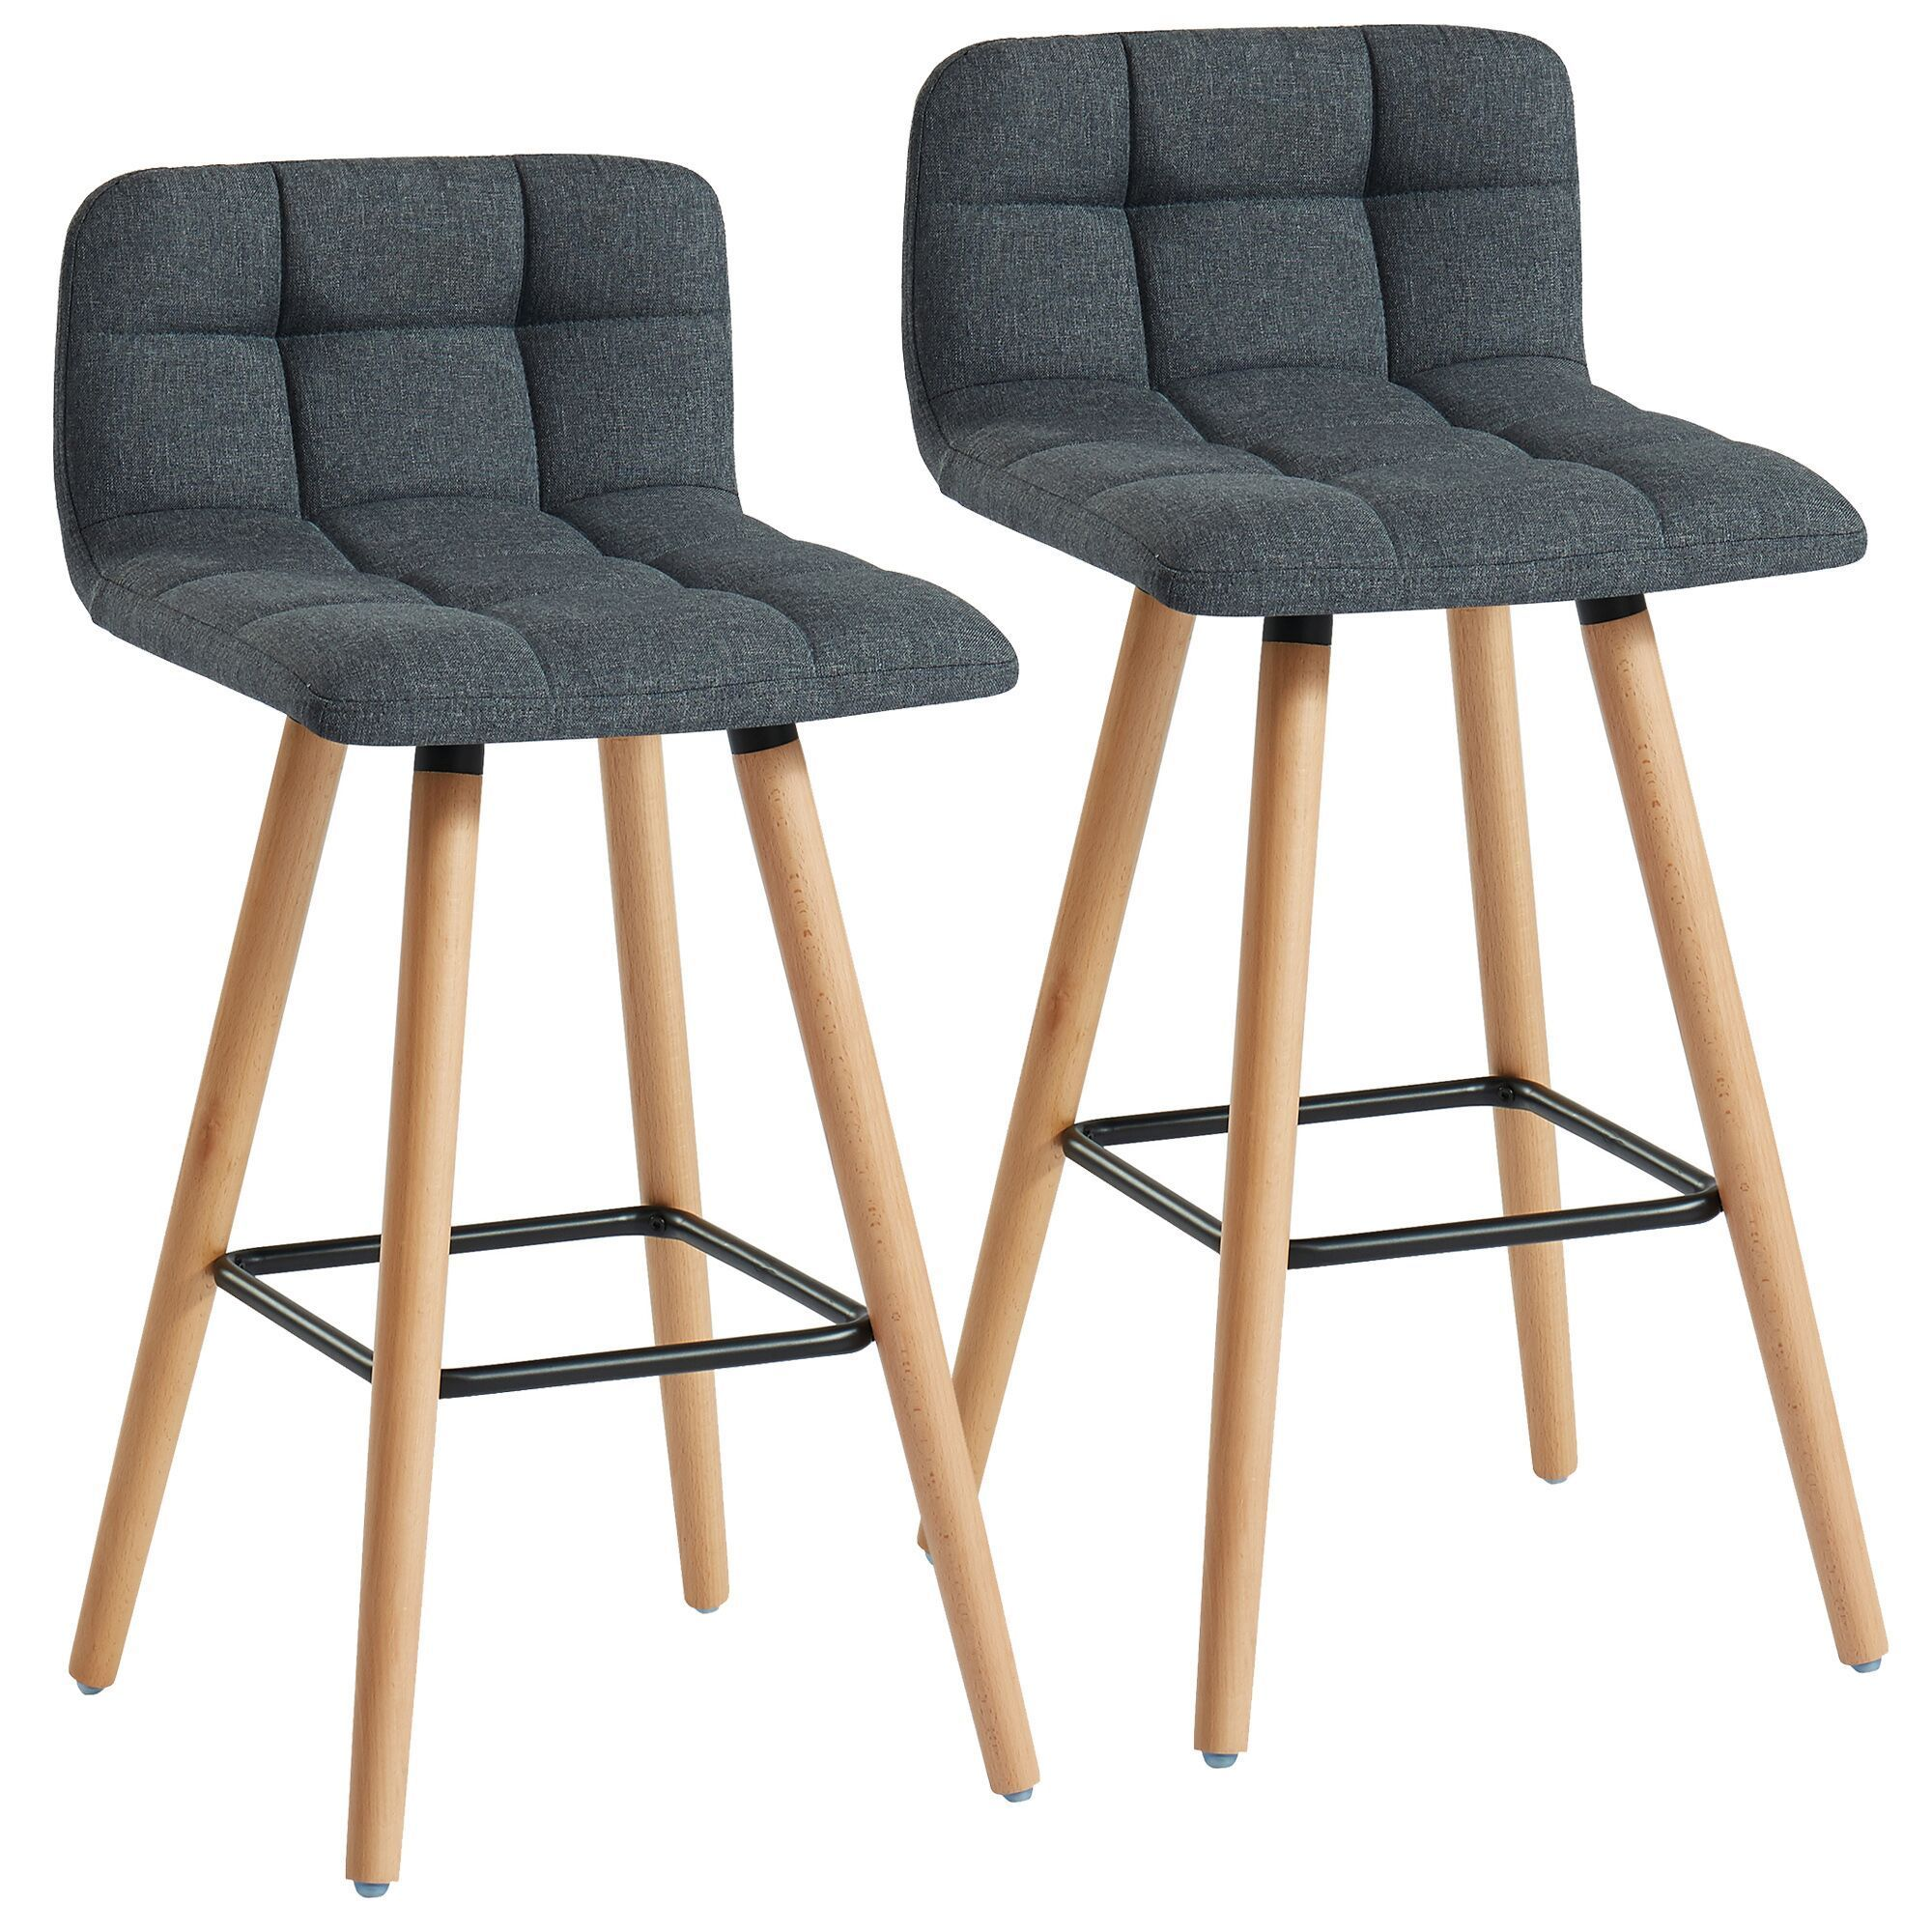 Set Of 2 Charcoal Gray And Beige Transitional Counter Stools 26 In 2021 Stool Bar Stools Counter Stools